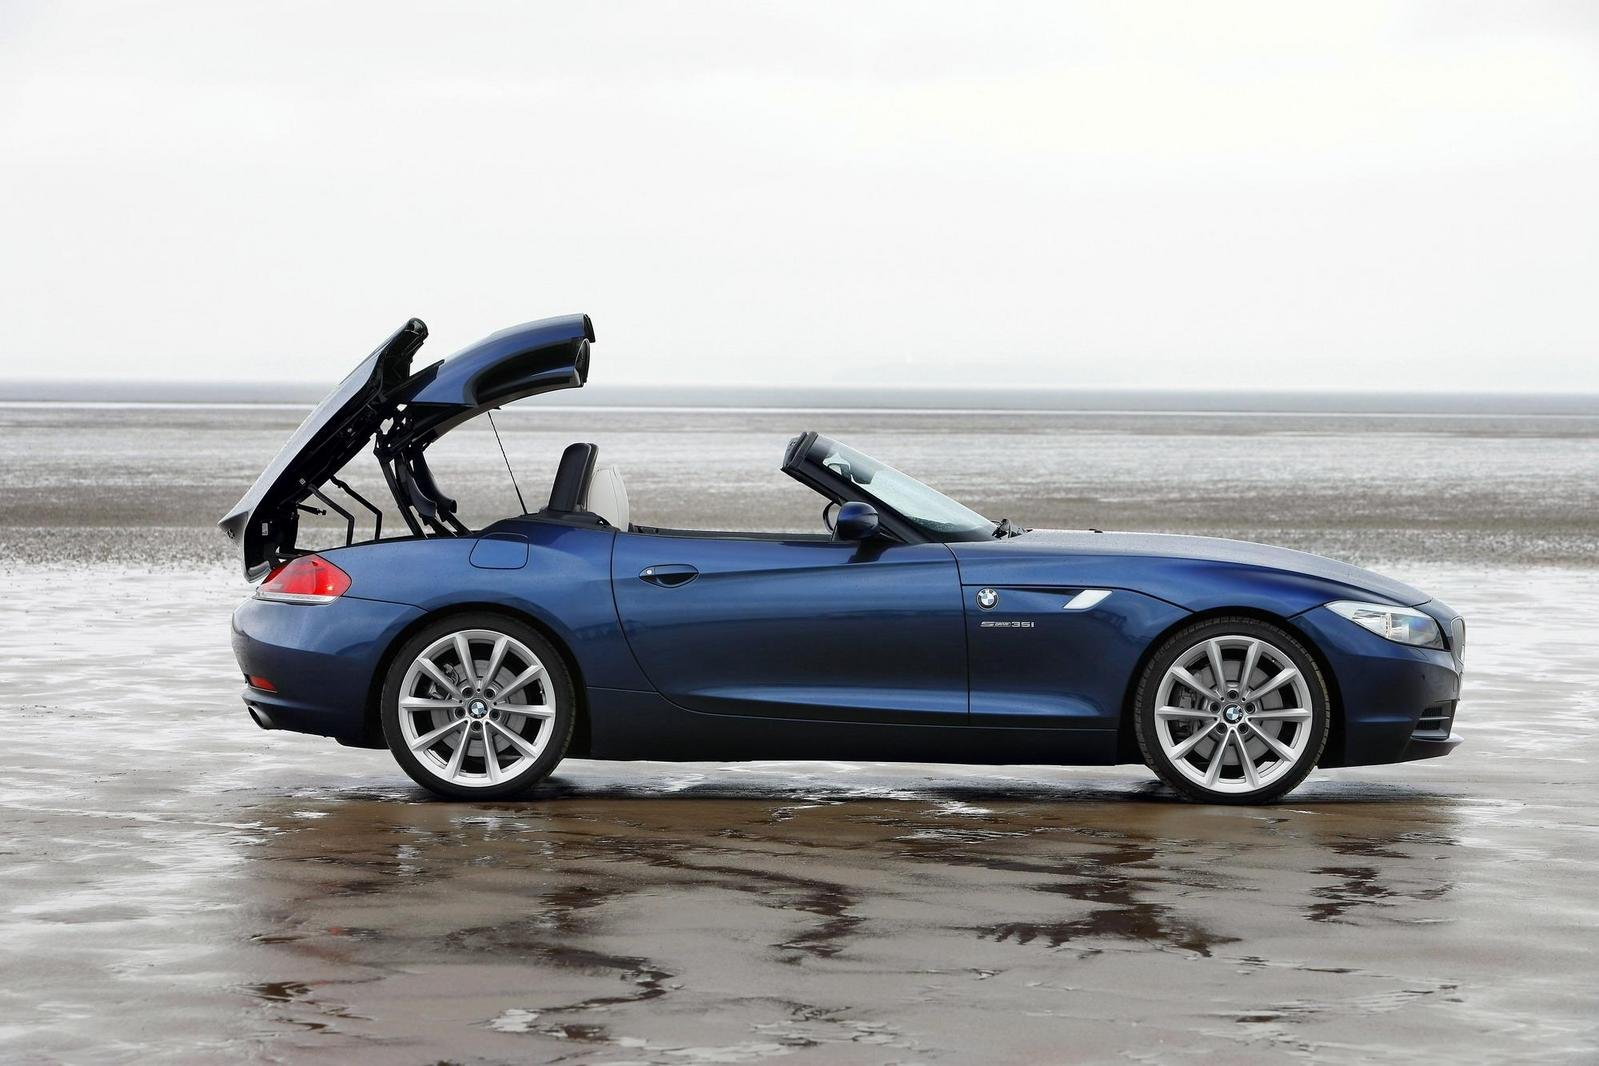 2009 bmw z4 roadster picture 299354 car review top speed. Black Bedroom Furniture Sets. Home Design Ideas